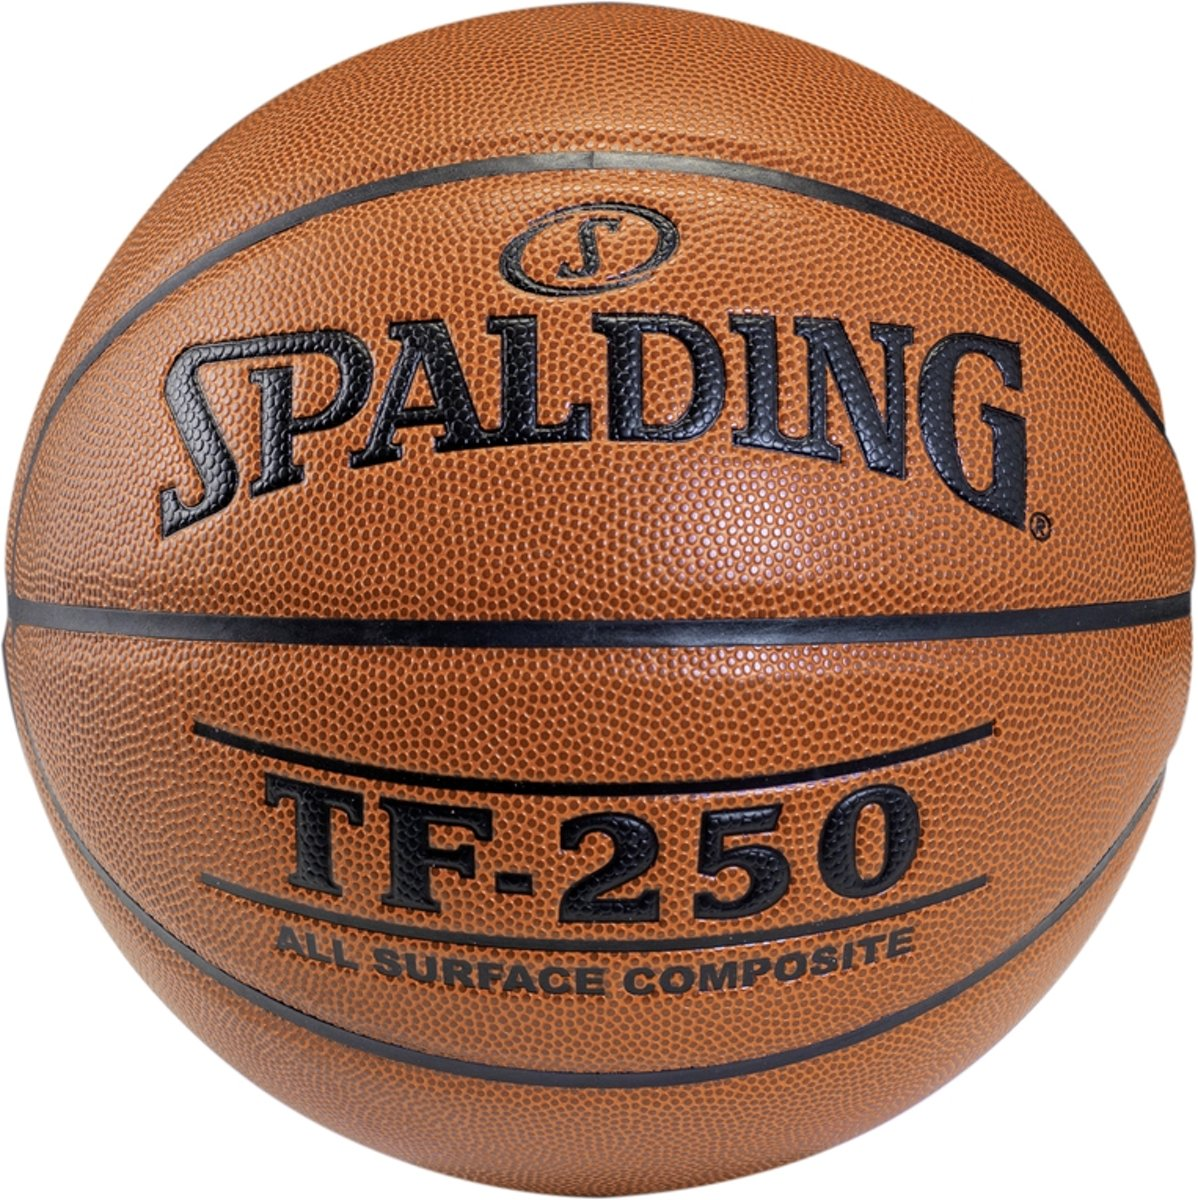 Spalding Basketbal TF250 in/out mt 6/7 kopen